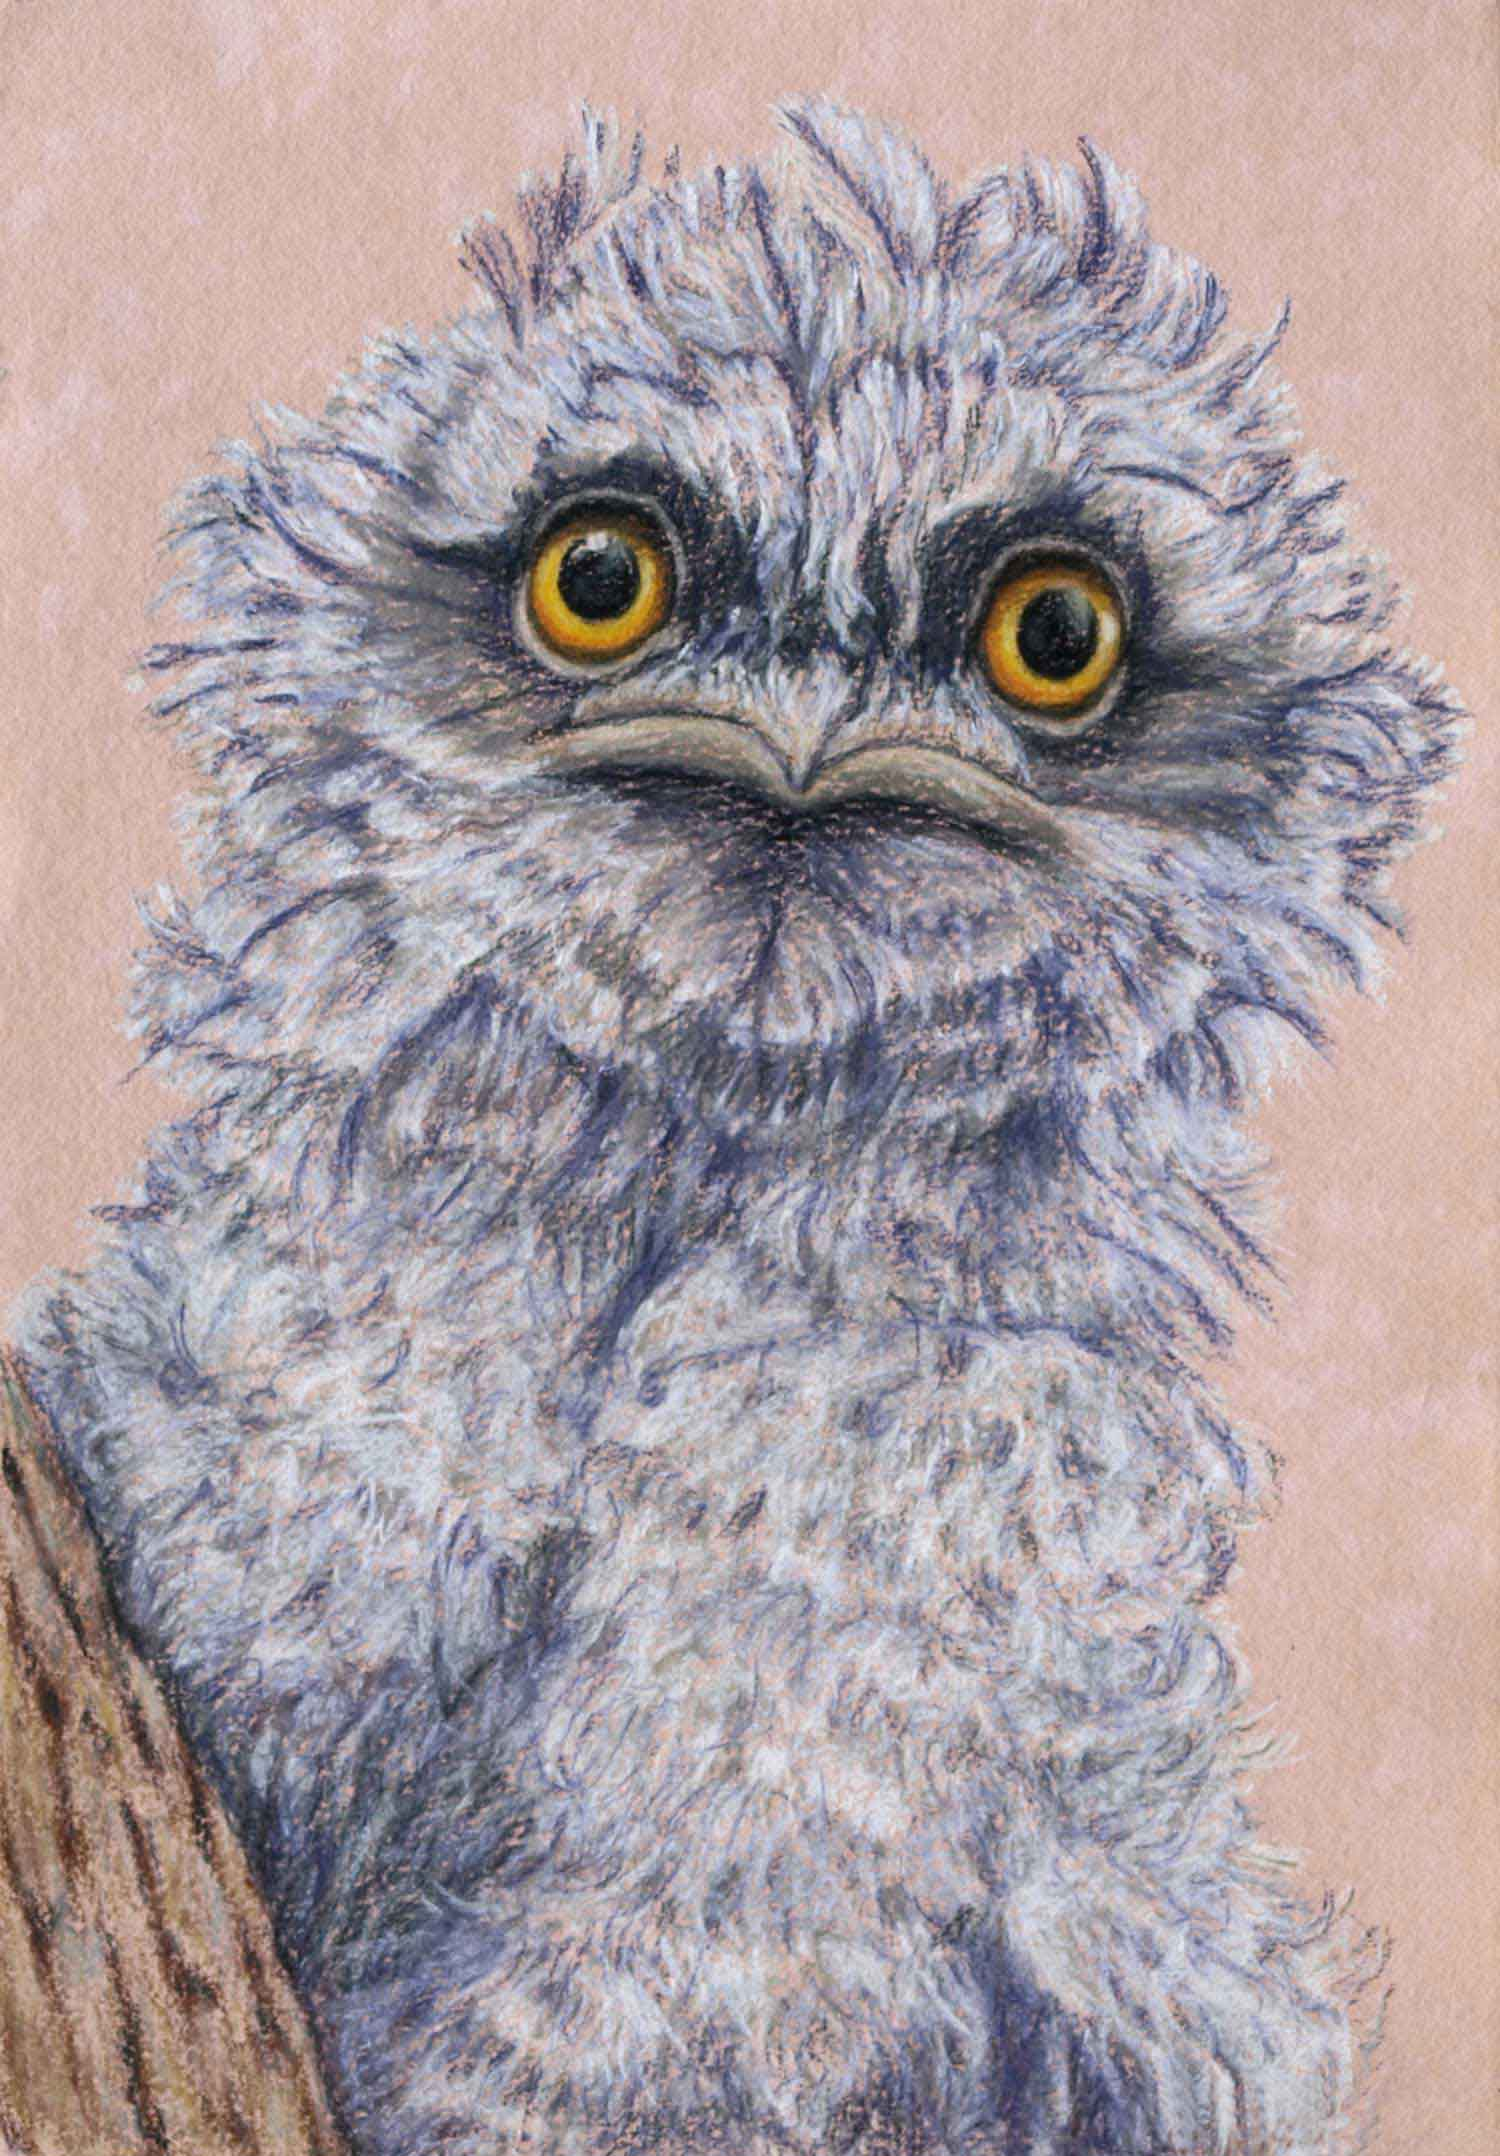 tawny frogmouth chick 30 x 21 cm  Pastel on handmade paper  SOLD